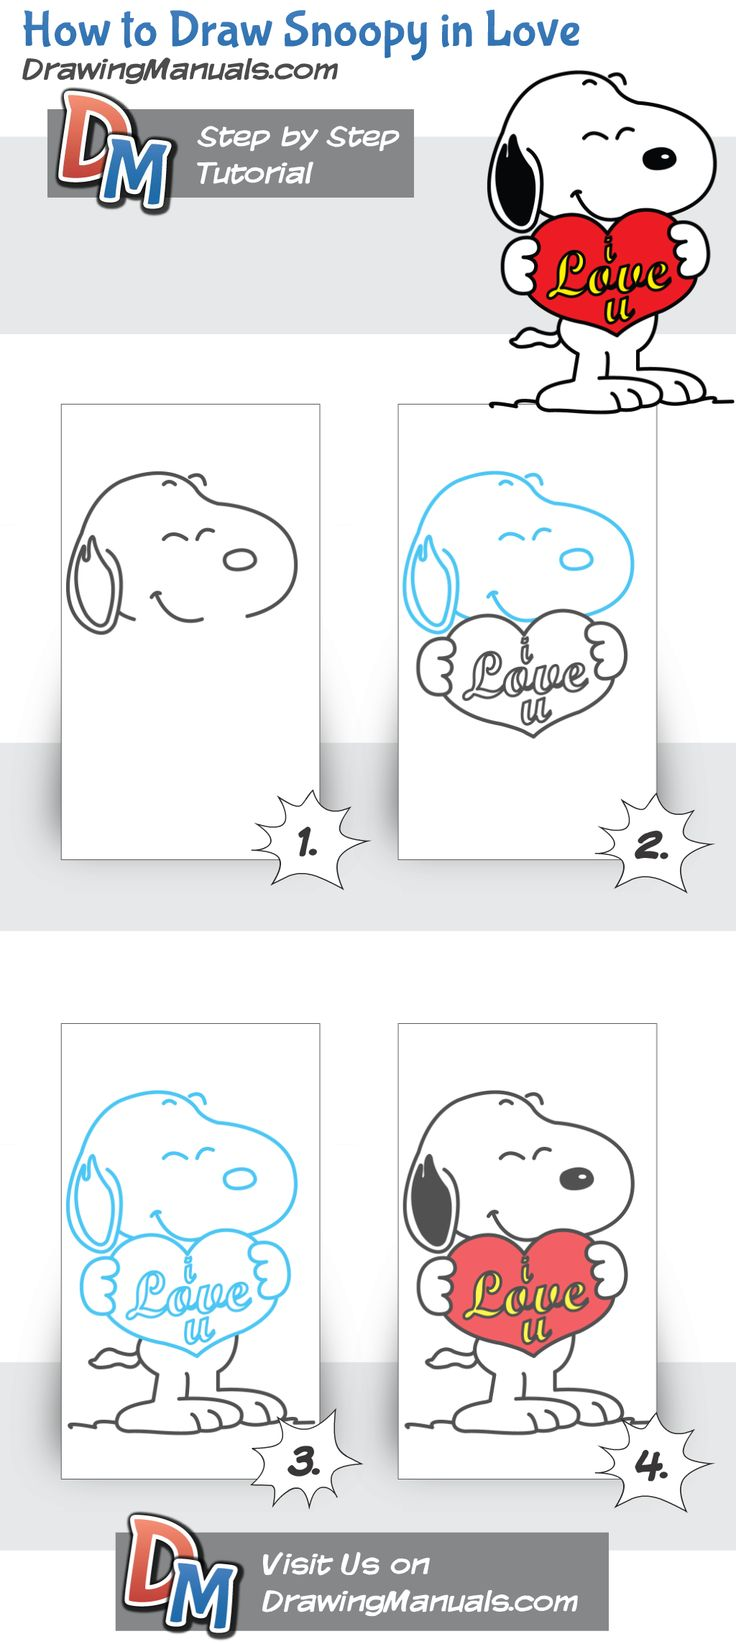 How to Draw Snoopy in Love, Snoopyvalentine http://drawingmanuals.com/manual/how-to-draw-snoopy-in-love/